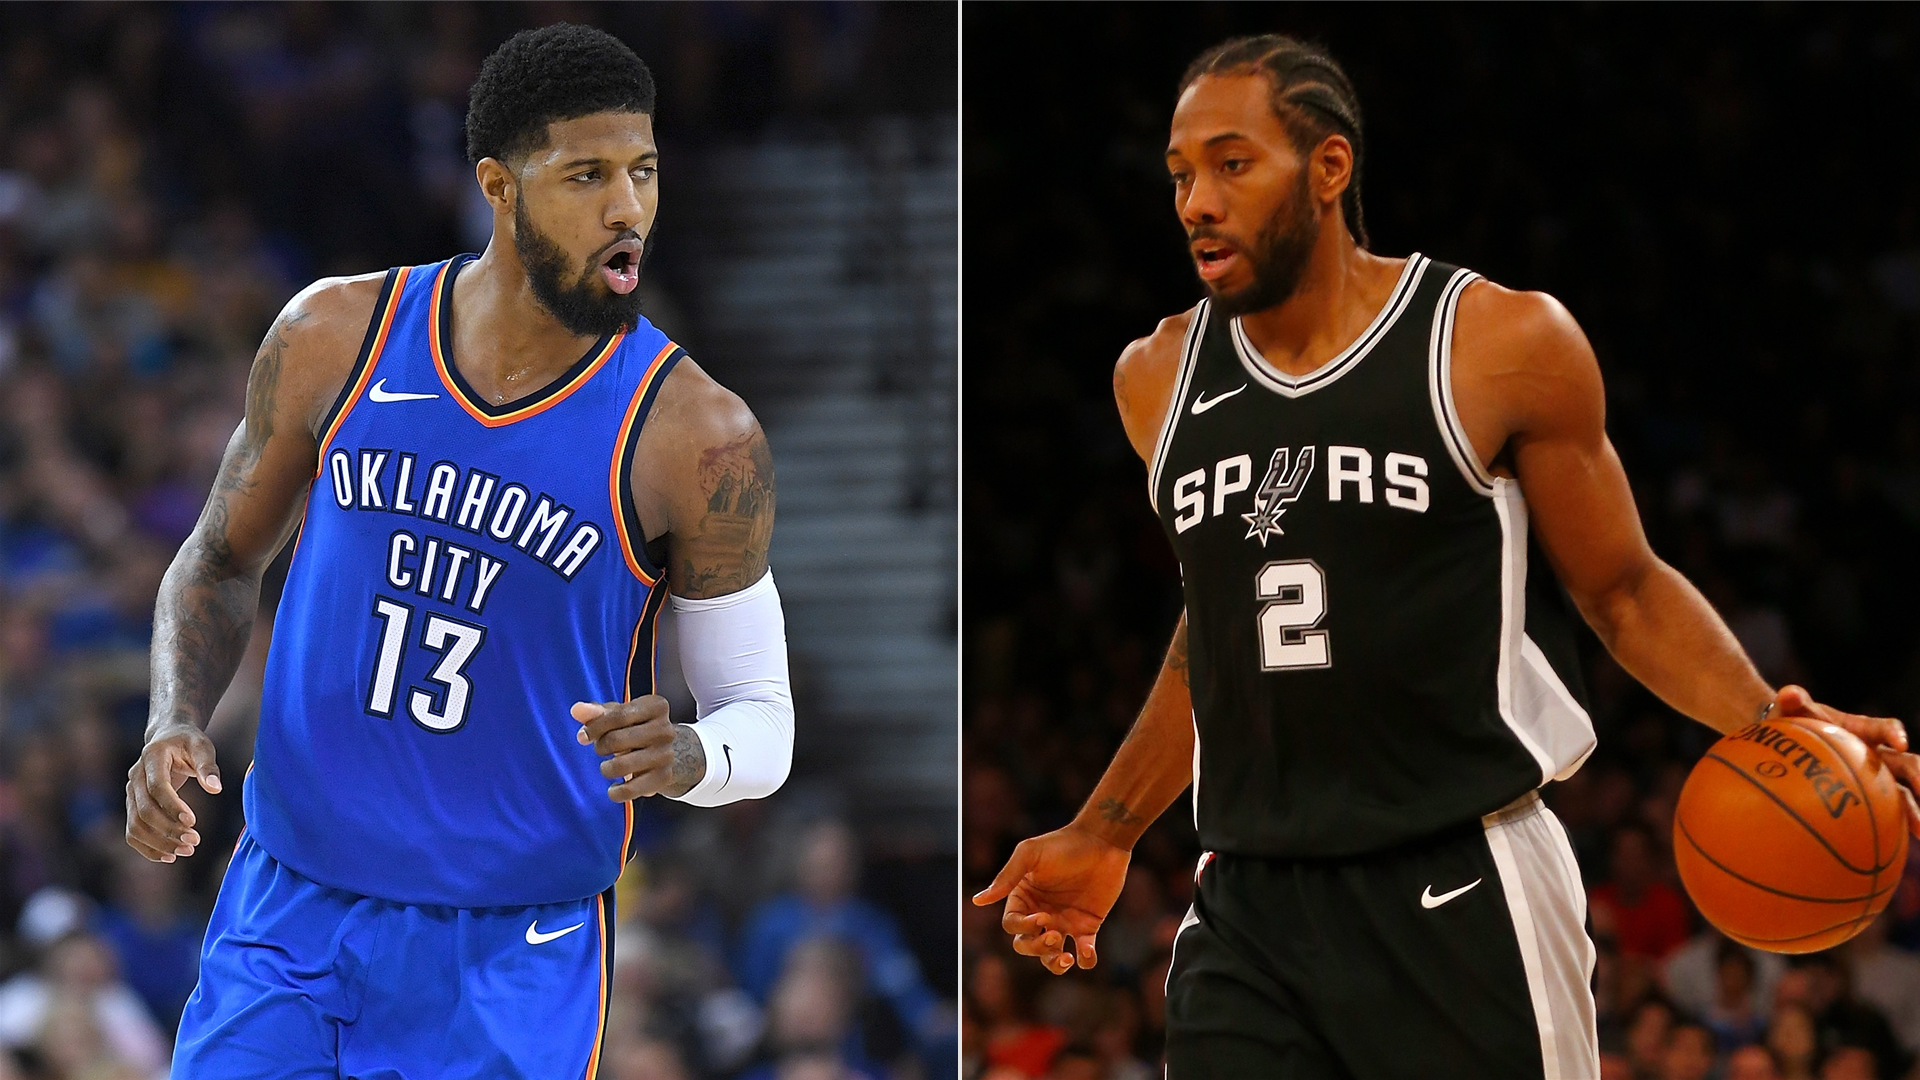 Will Thunder's big win with Paul George change thinking on Kawhi Leonard trade?